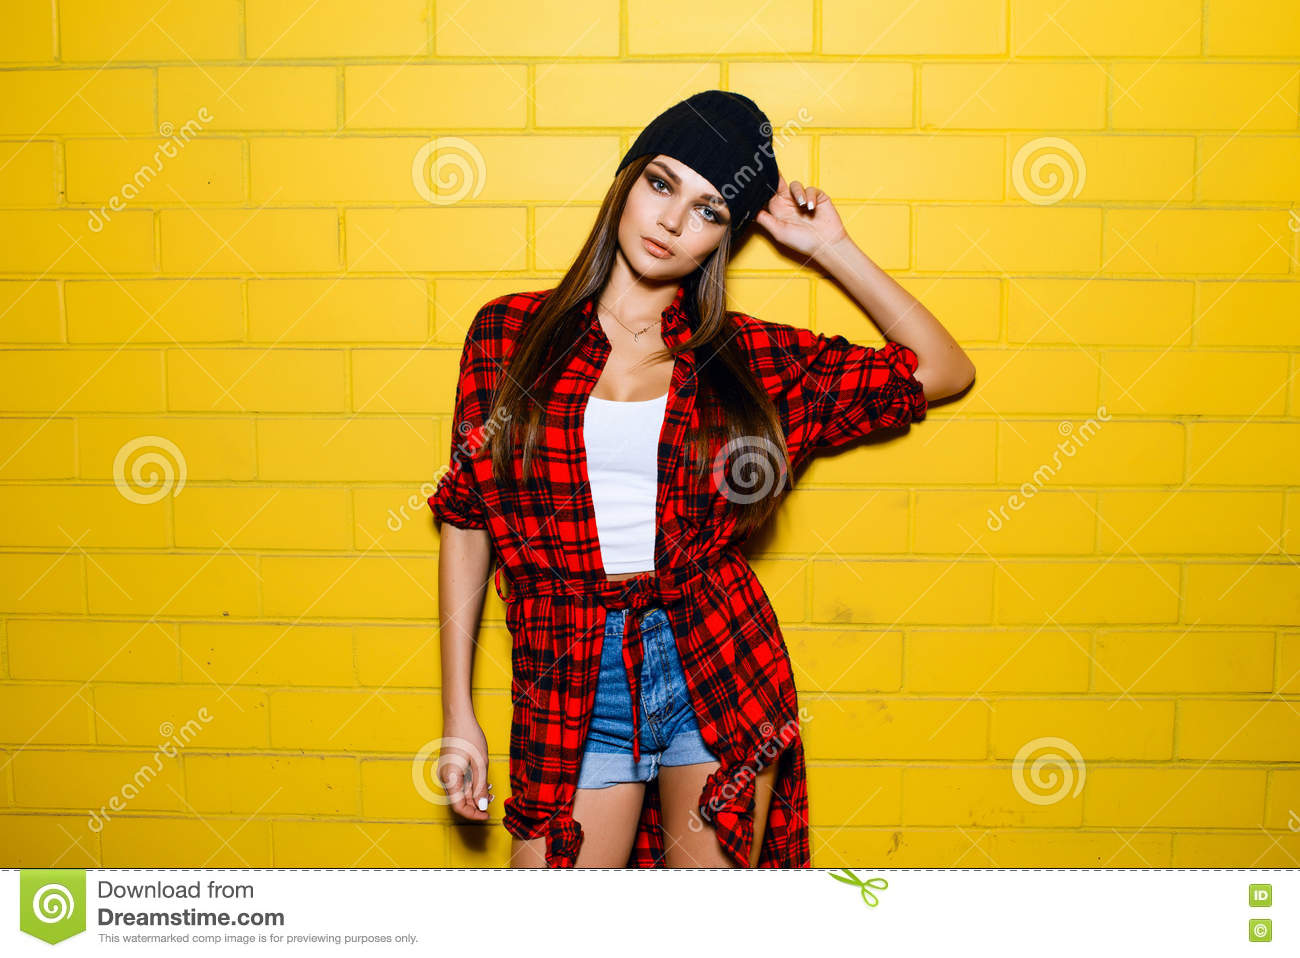 85465d765be Beautiful young hipster girl posing and smiling near urban yellow wall  background in red plaid shirt